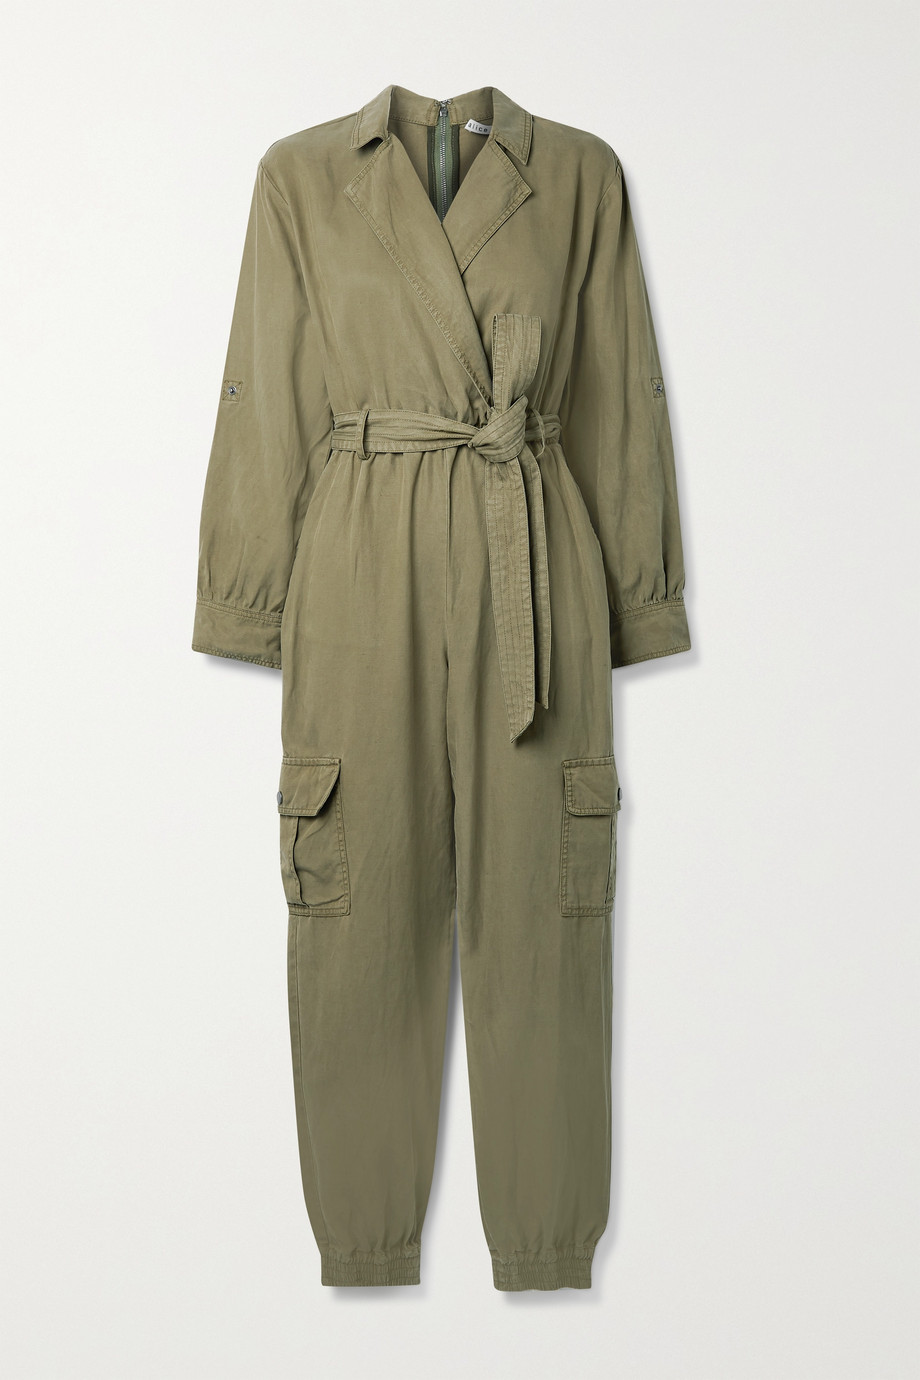 Alice + Olivia Bessie TENCEL Lyocell, linen and cotton-blend twill jumpsuit